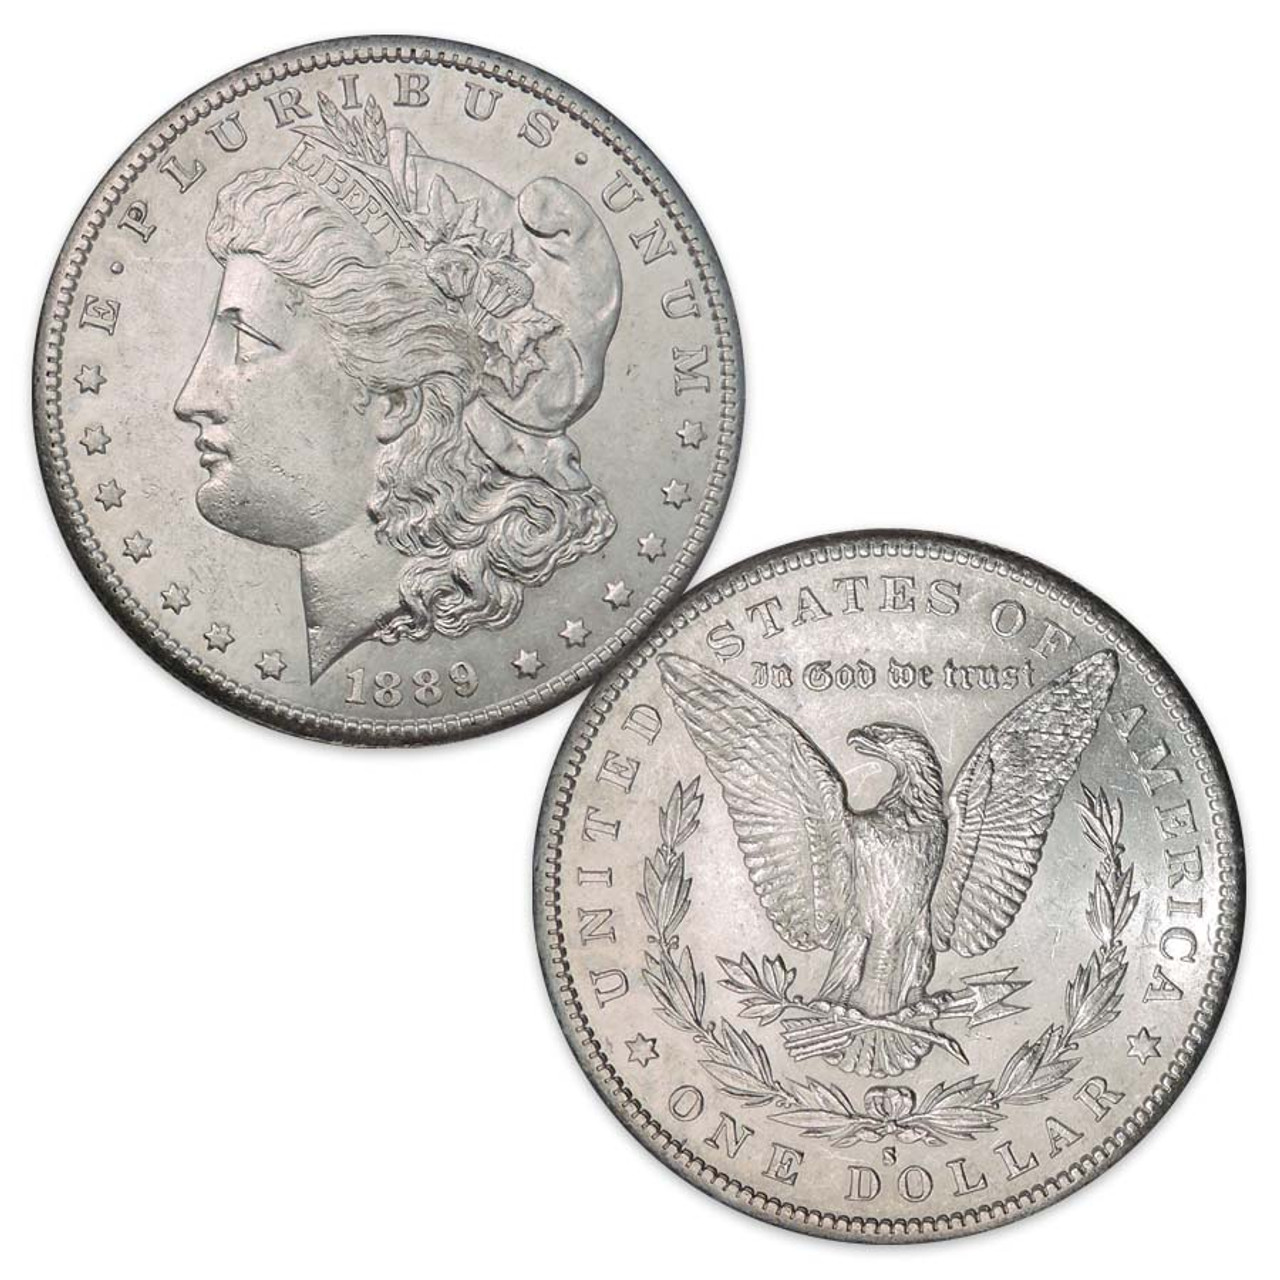 1889-S Morgan Silver Dollar About Uncirculated Image 1